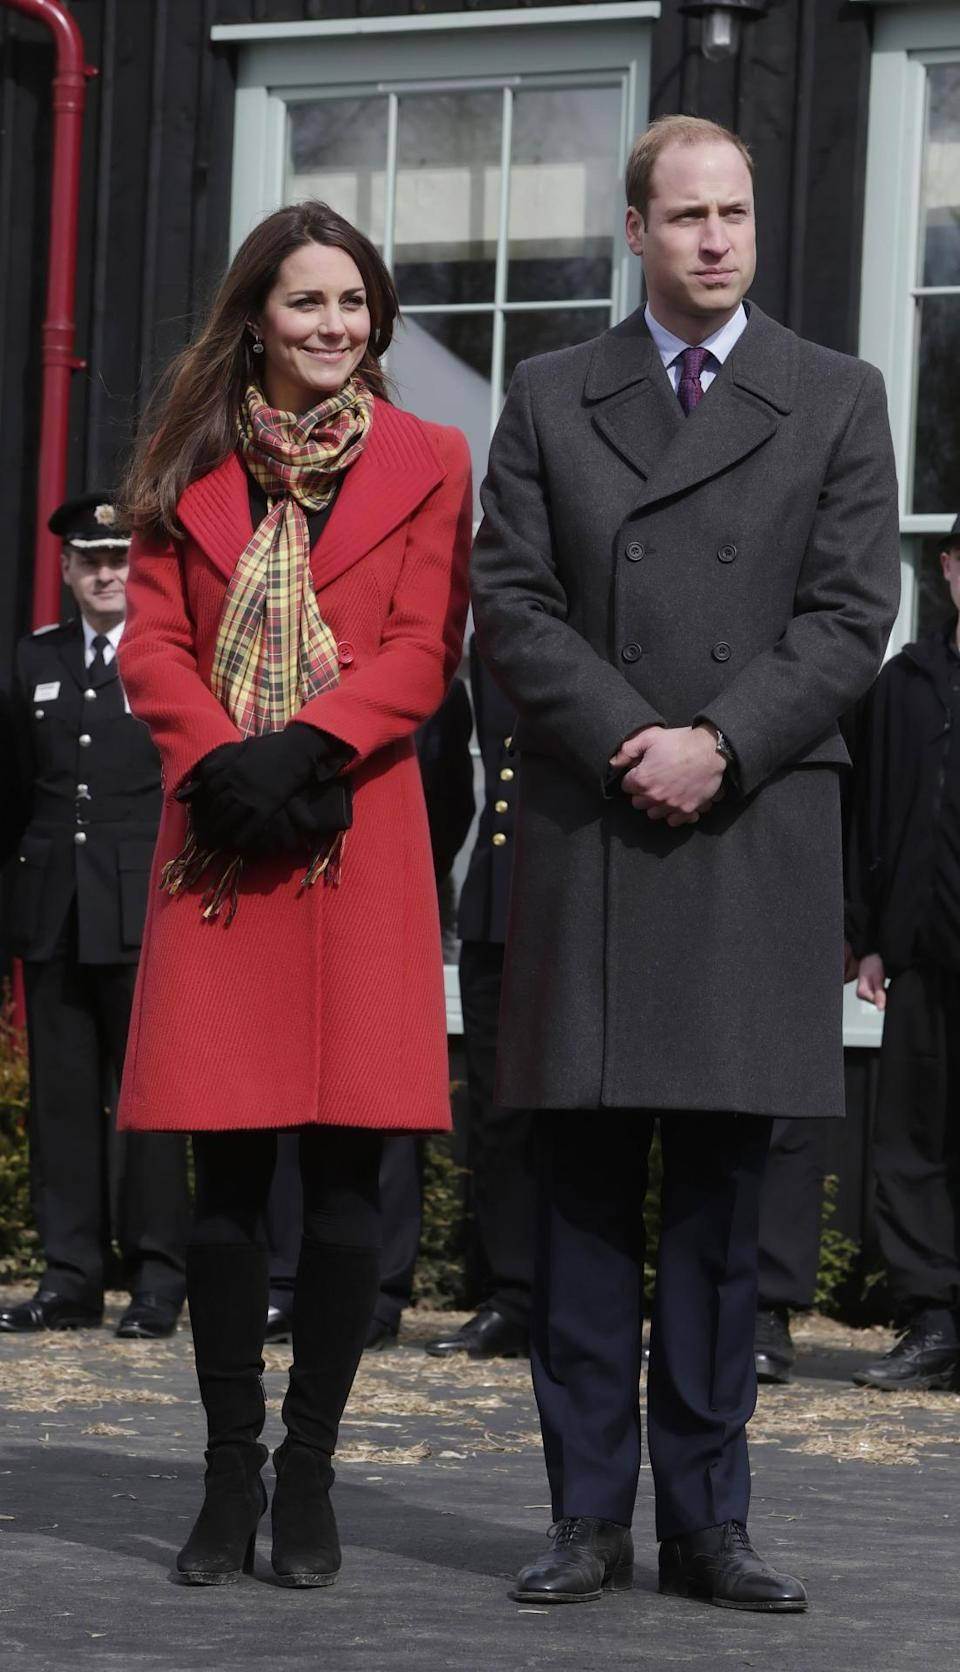 <p>For a day in Scotland, Kate chose a stylish red Armani coat with a tartan scarf and knee high Aquatalia boots. </p><p><i>[Photo: PA]</i></p>